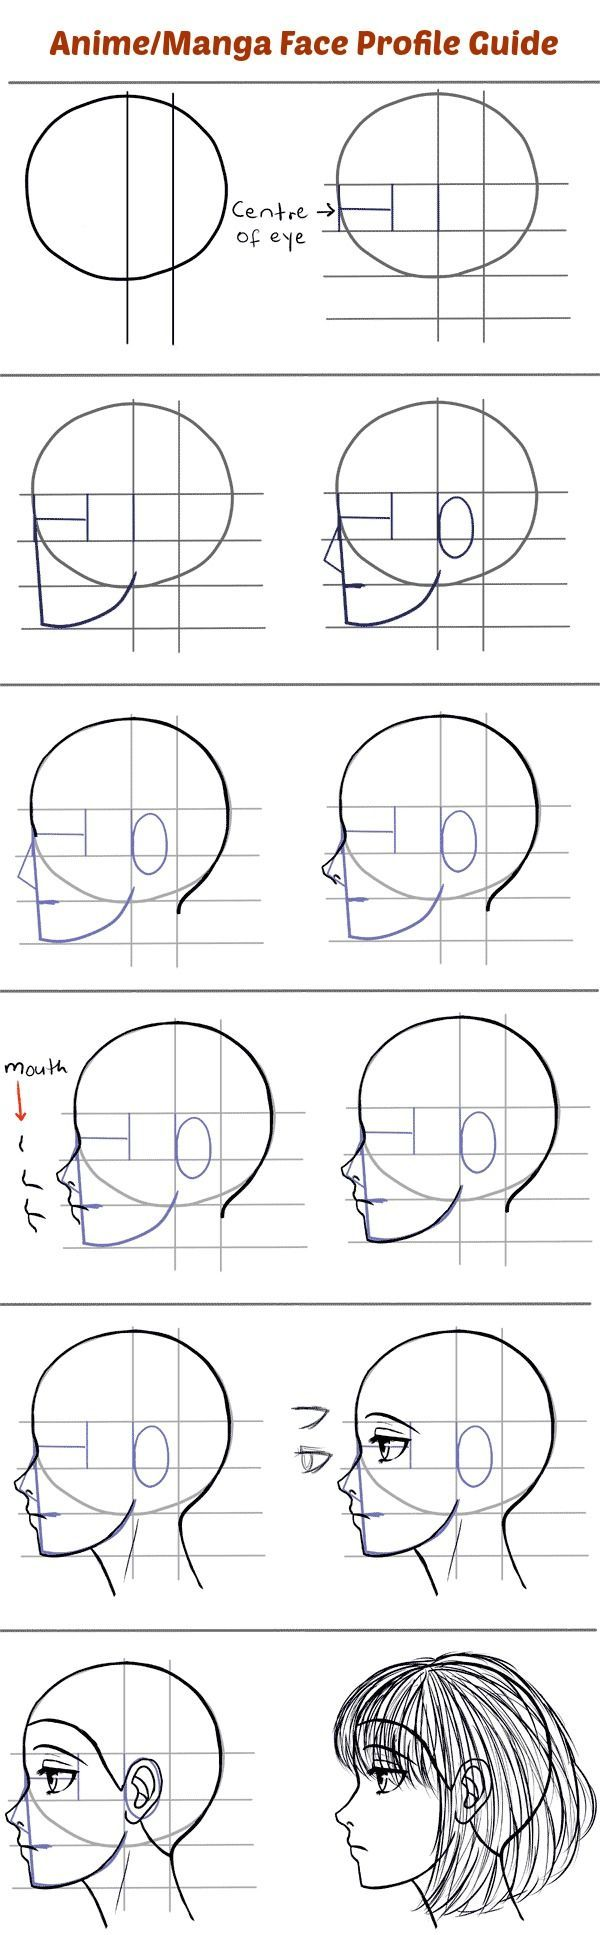 How to draw the side of a face in manga style manga face and drawings how to draw the side of a face in manga style ccuart Image collections